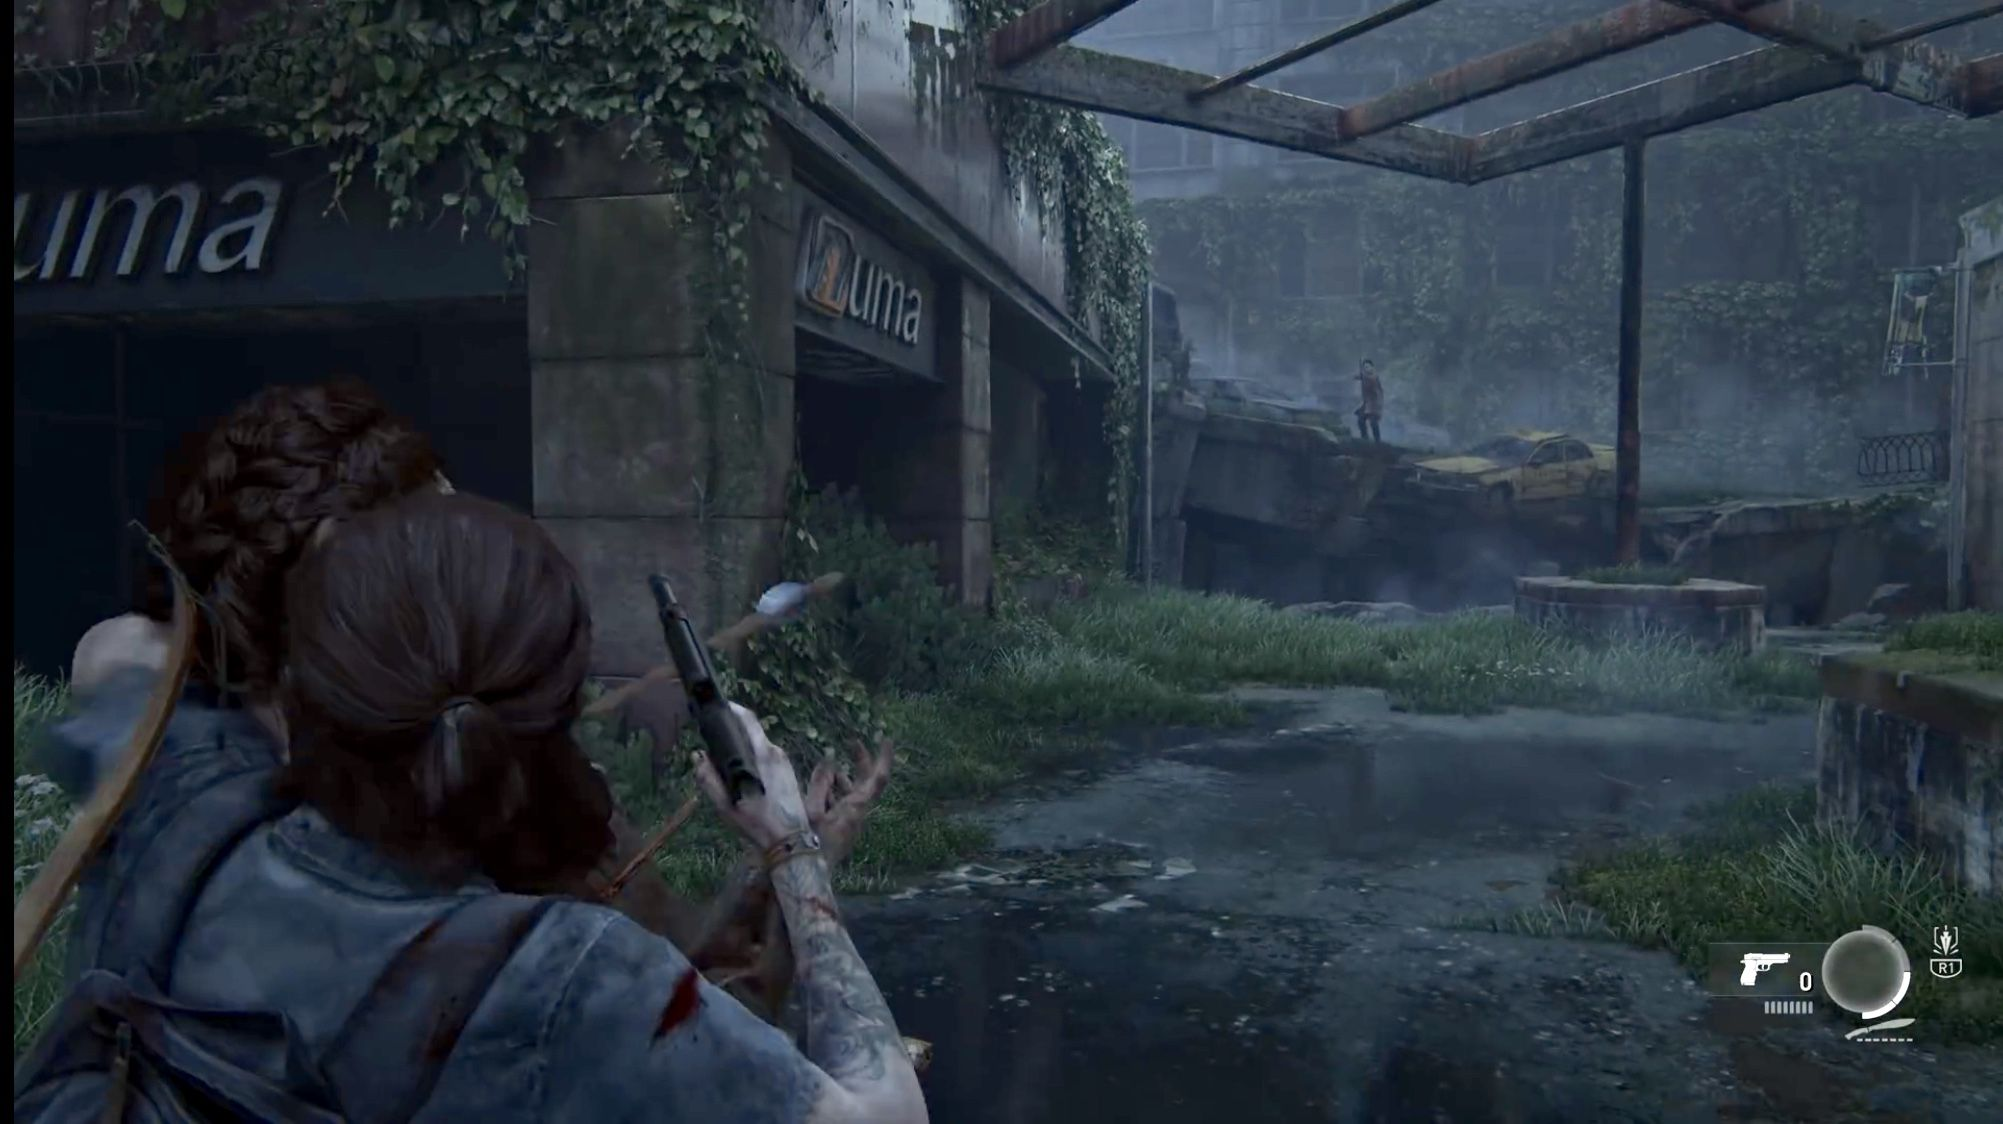 The Last of Us Part 2 gameplay demo from E3